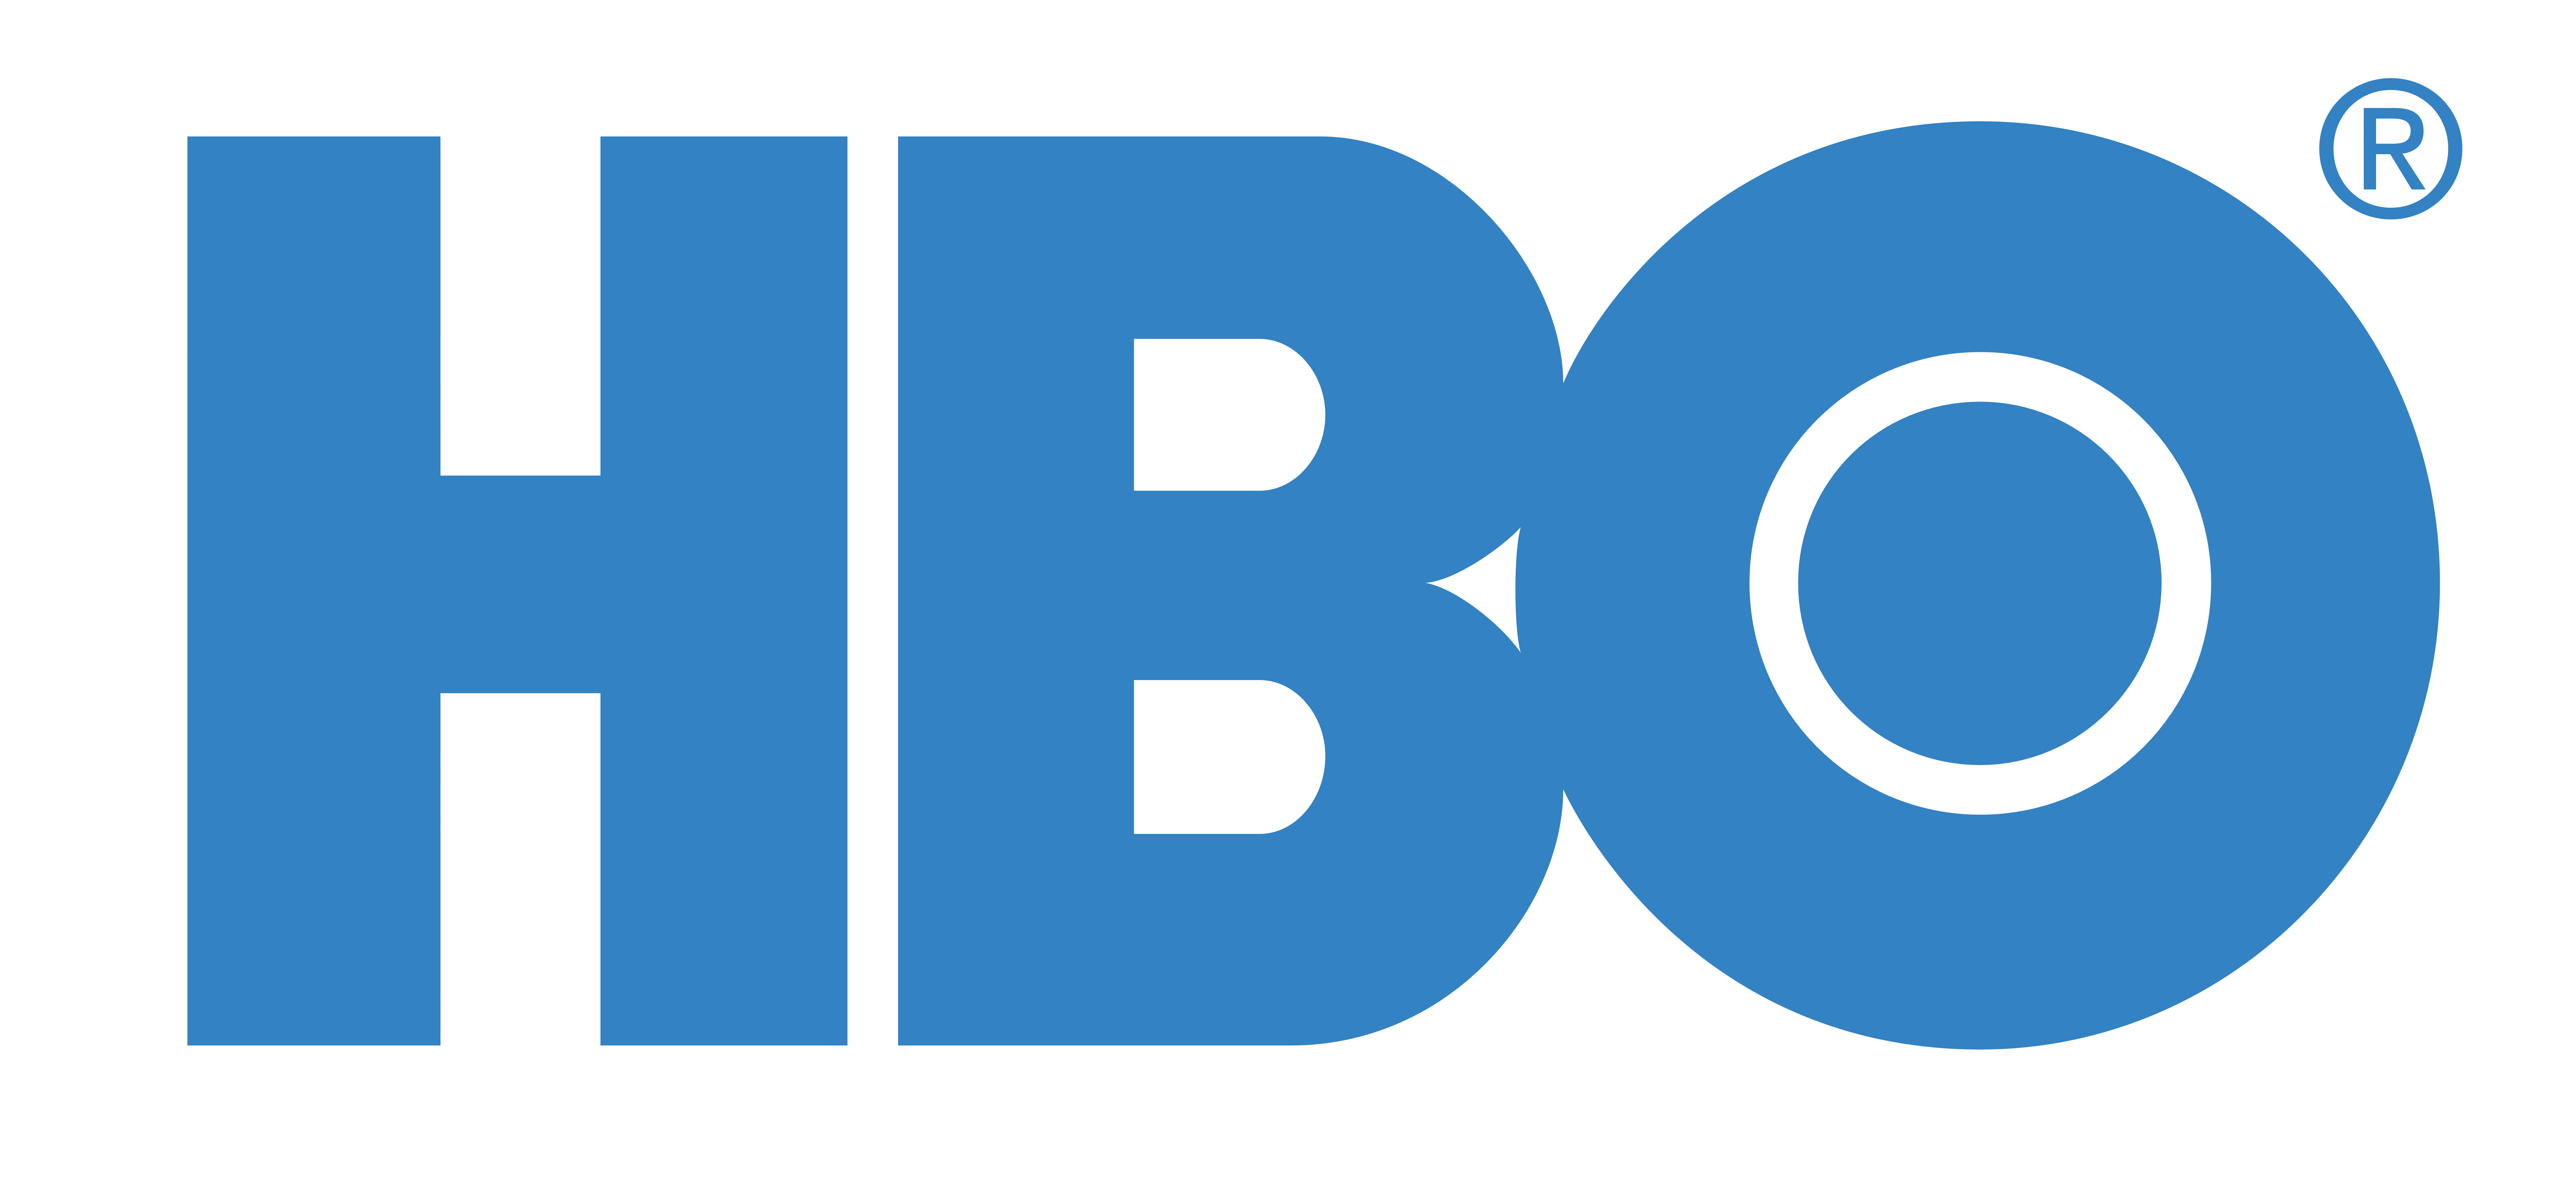 Logo hbo download free clipart with a transparent background.